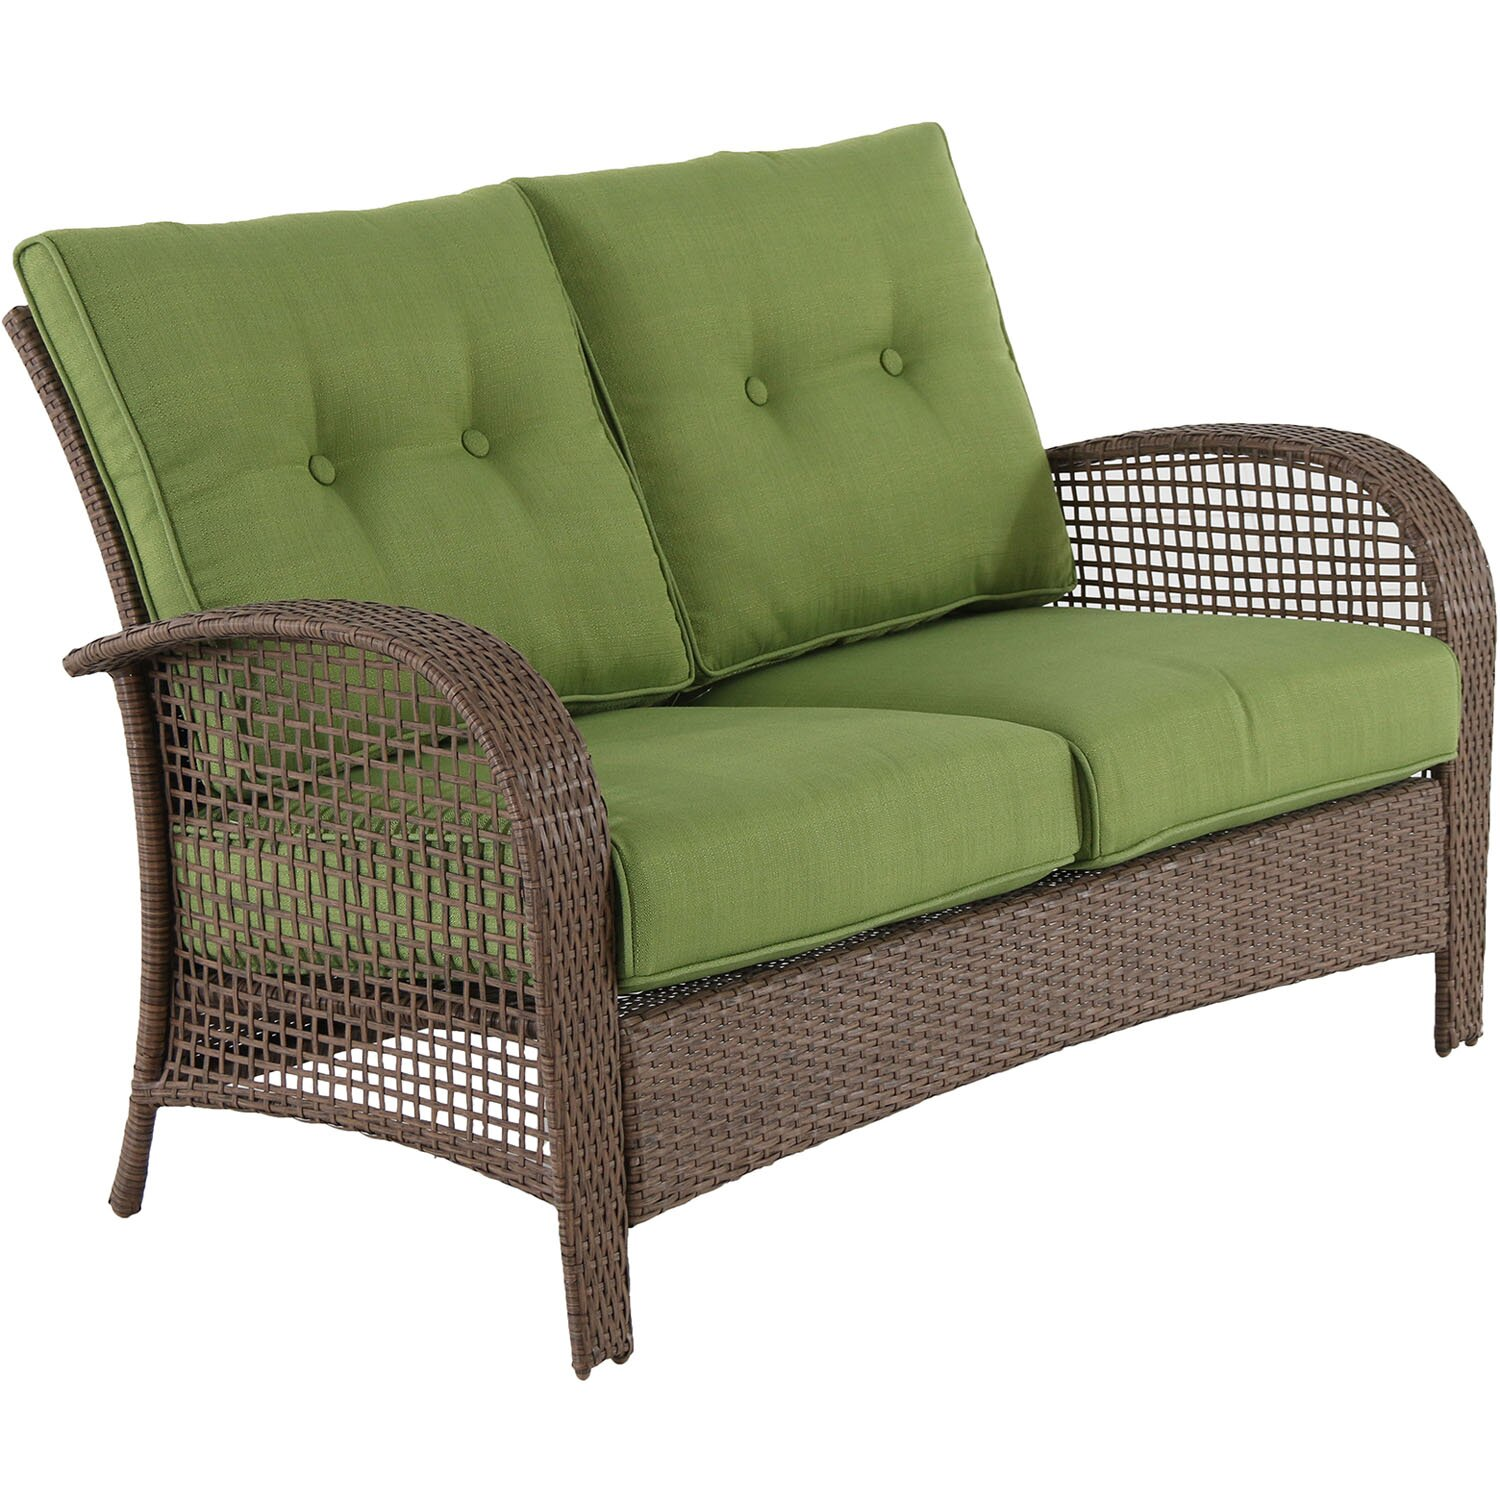 Annagrove Steel Wicker 4 Piece Deep Seating Group With